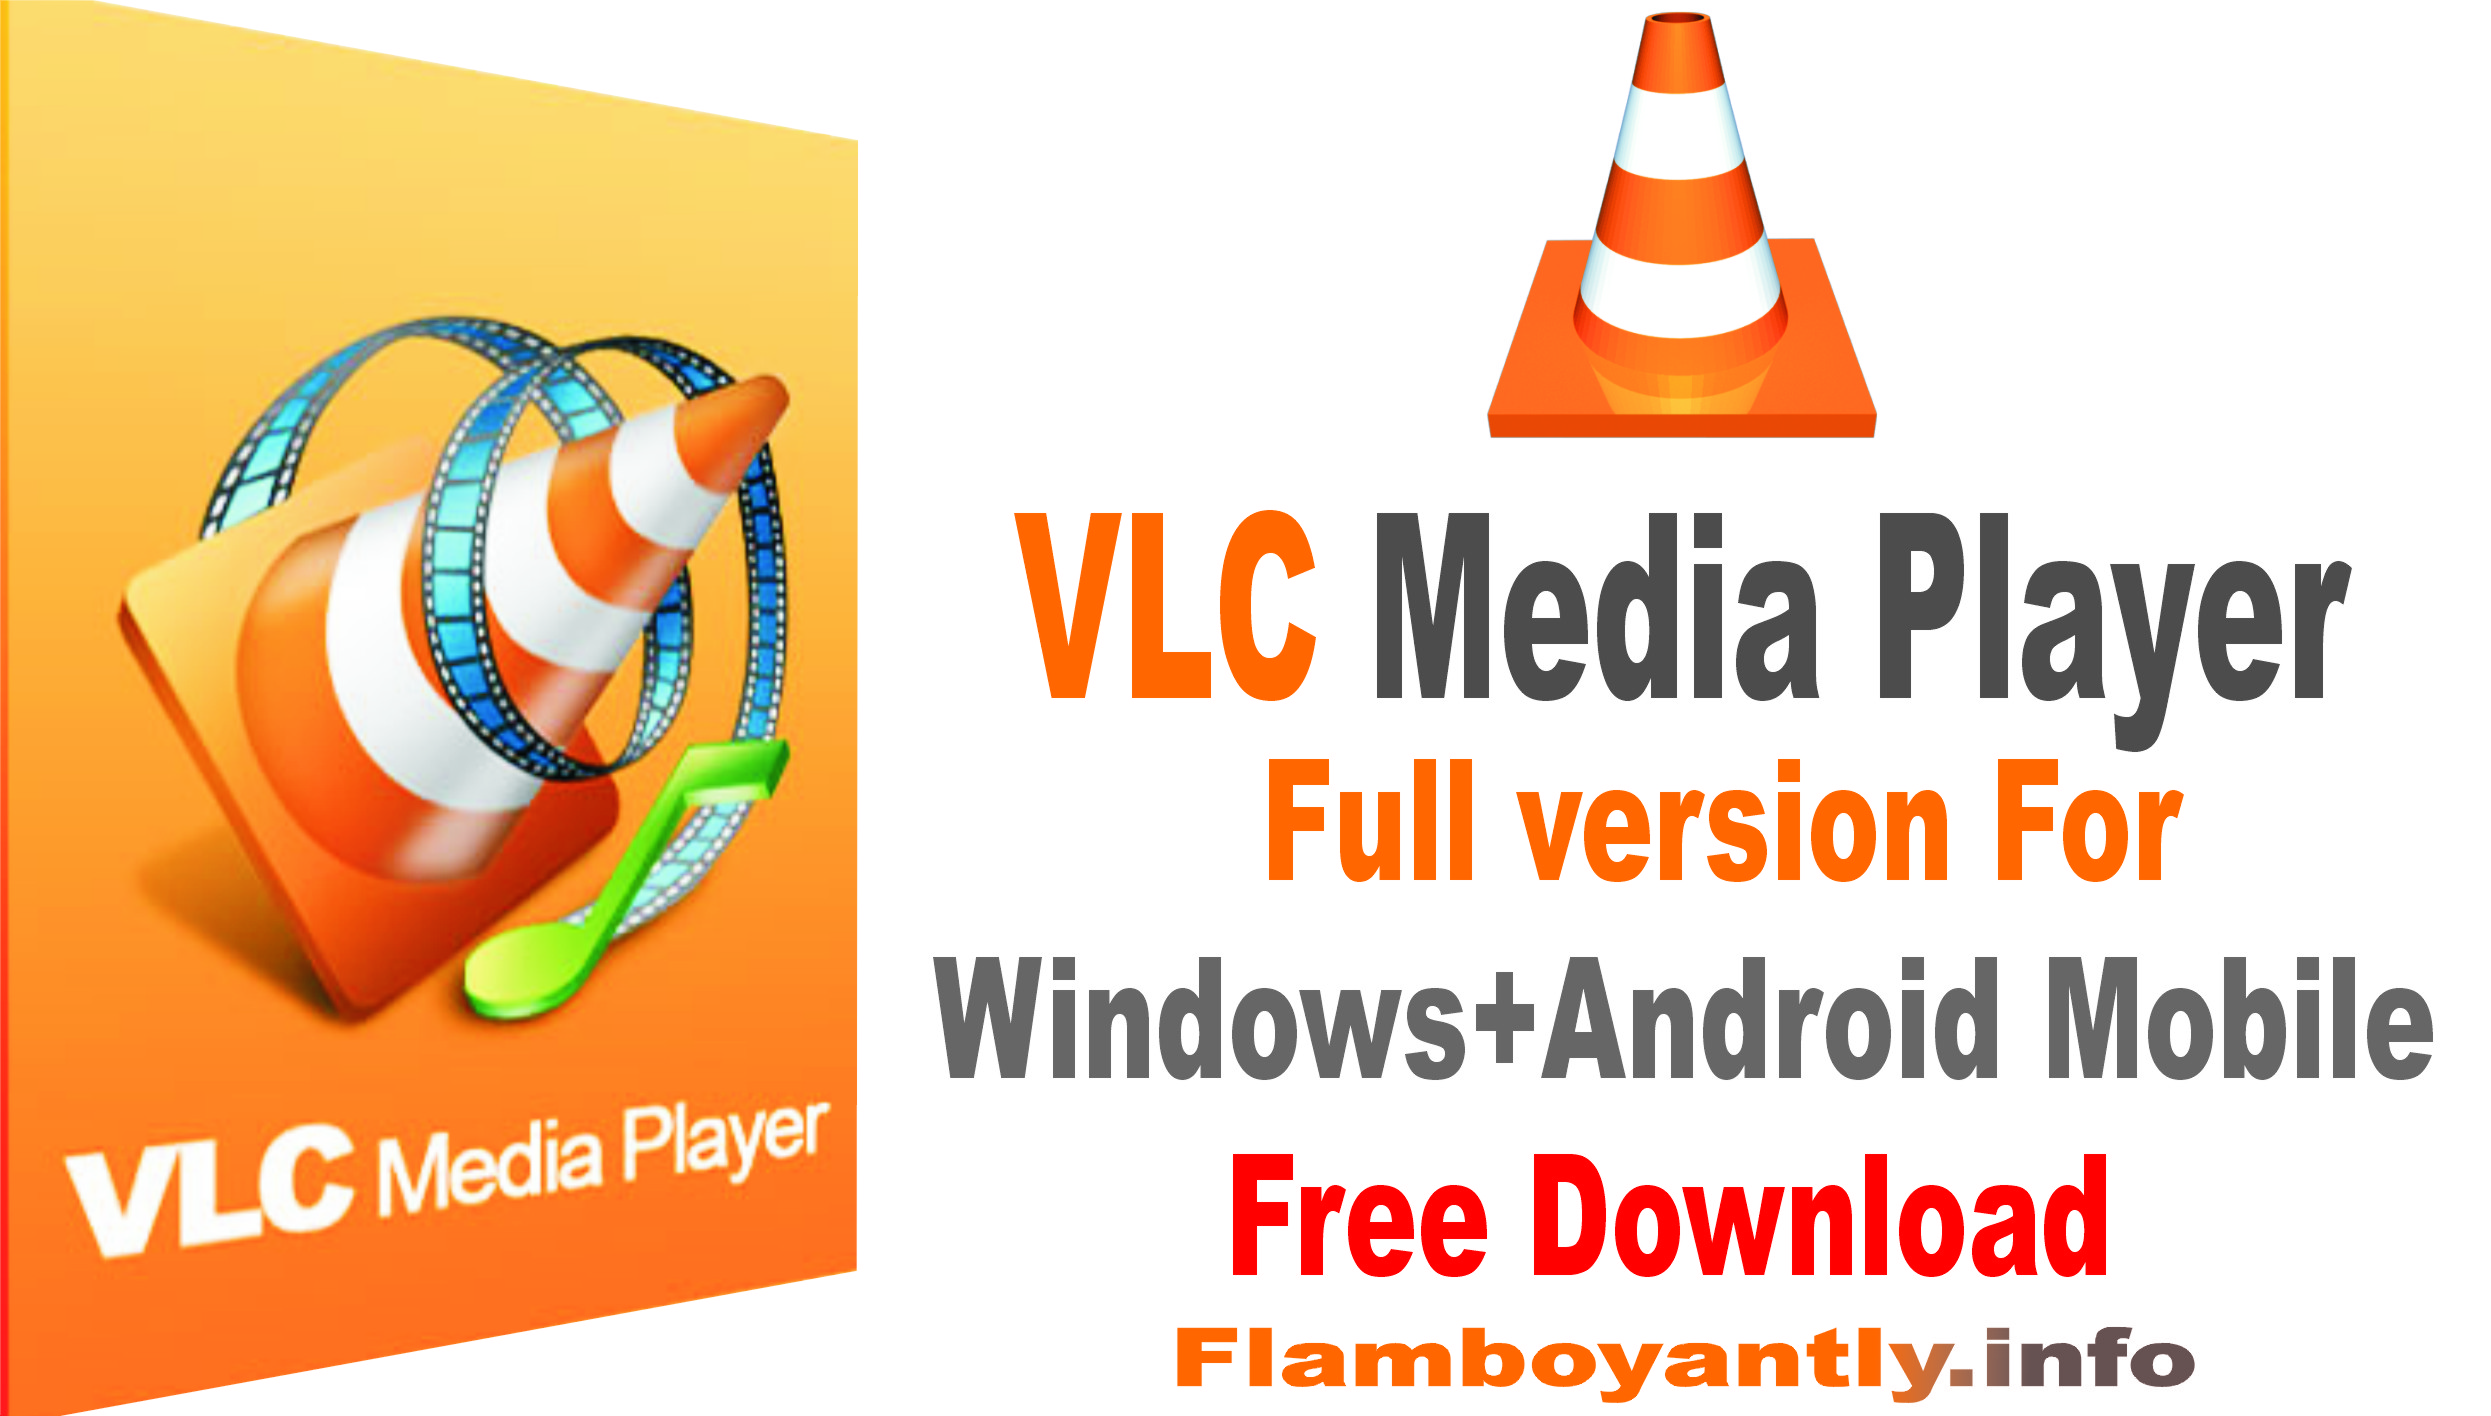 mobile media player free download